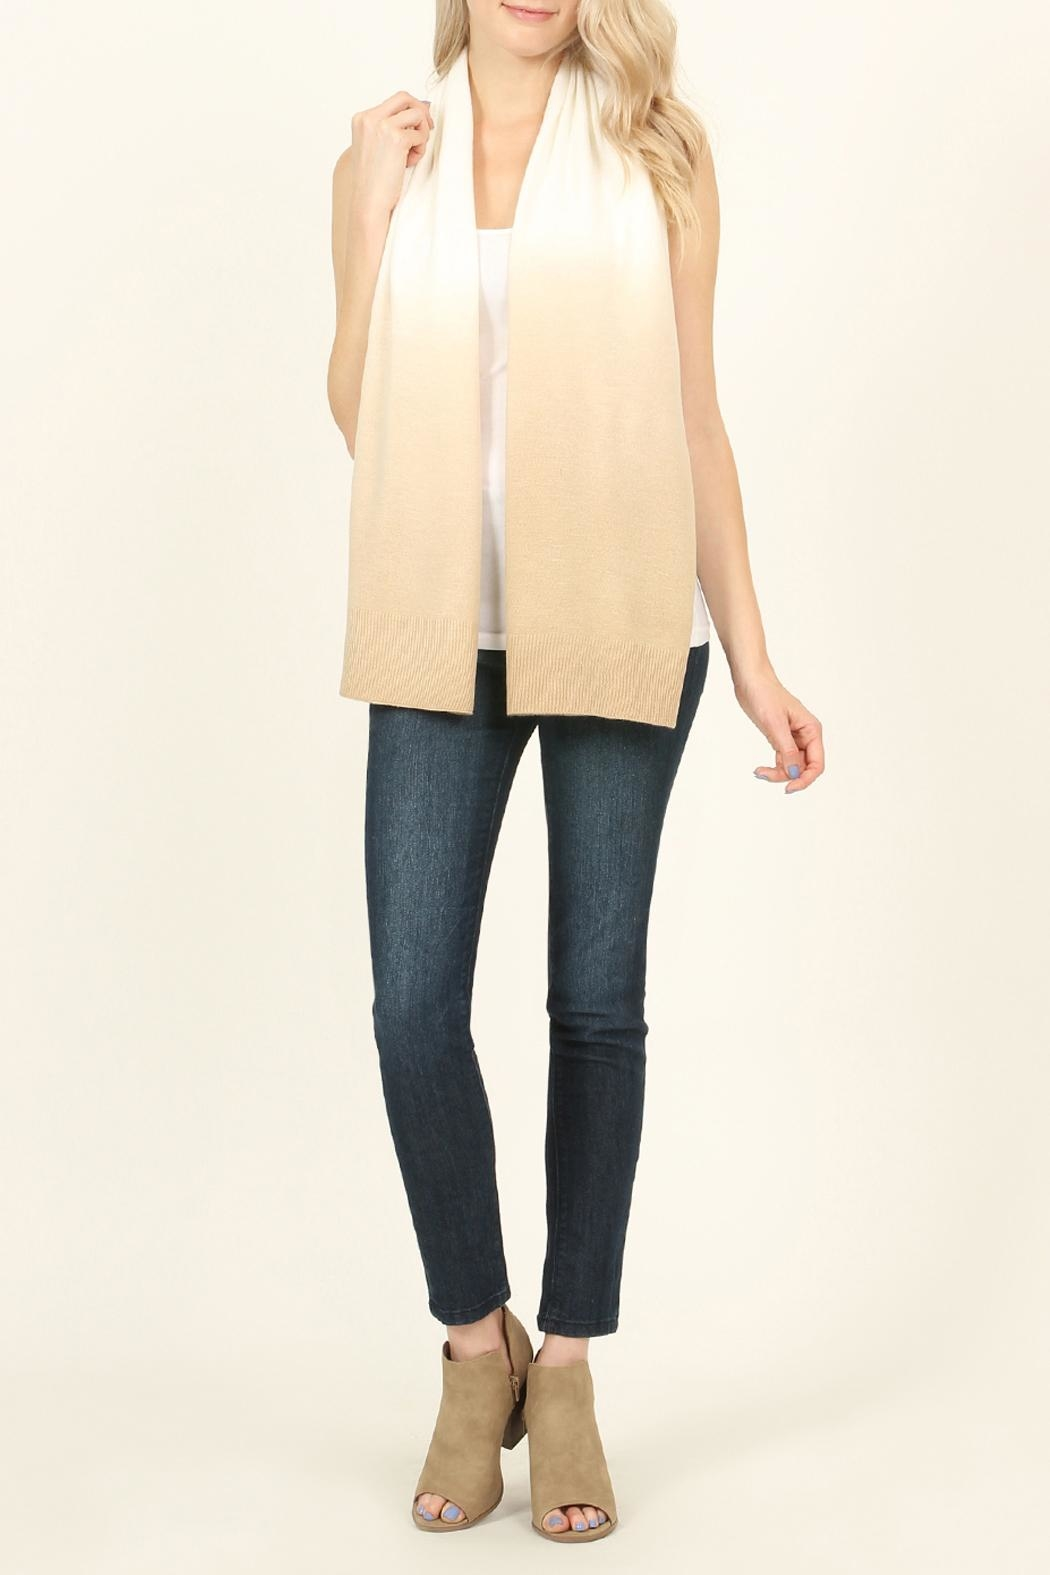 Riah Fashion Soft Ombré Button Cardigan - Back Cropped Image